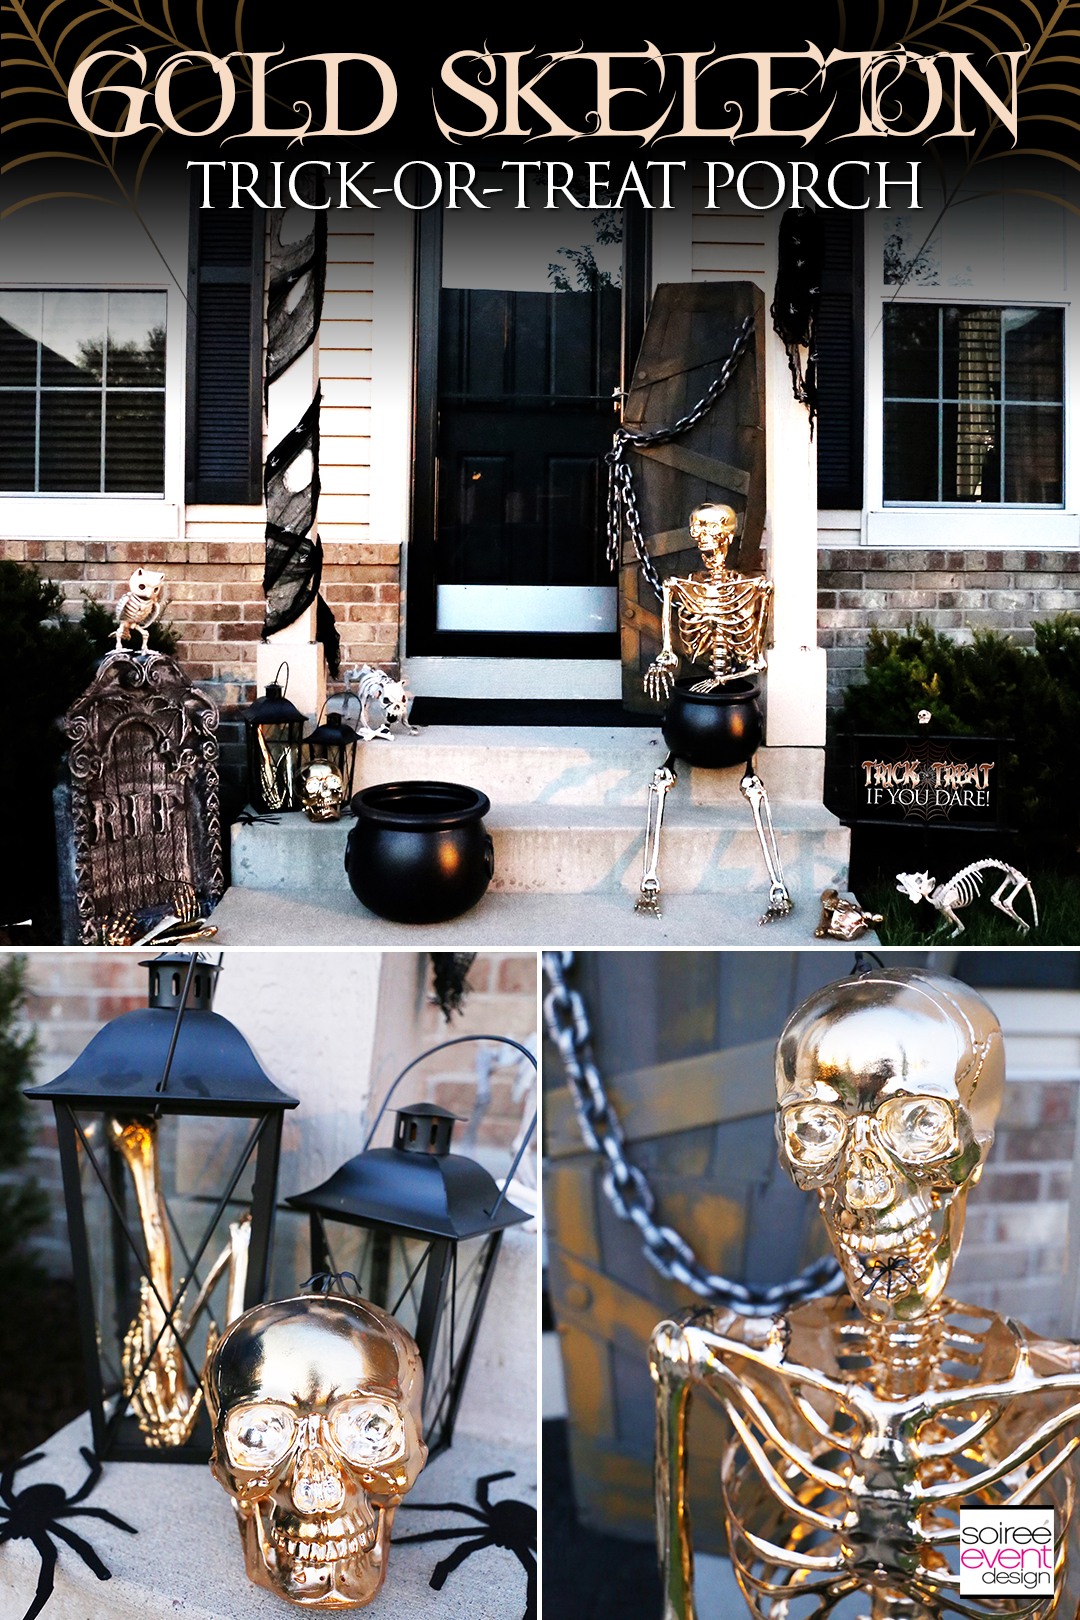 Check out these Gold Skeleton Halloween Porch Ideas that will give your house that spooky, yet sparkly glam look! #soireeeventdesign #halloweenporch #halloweendecorating #goldhalloween #goldskeleton